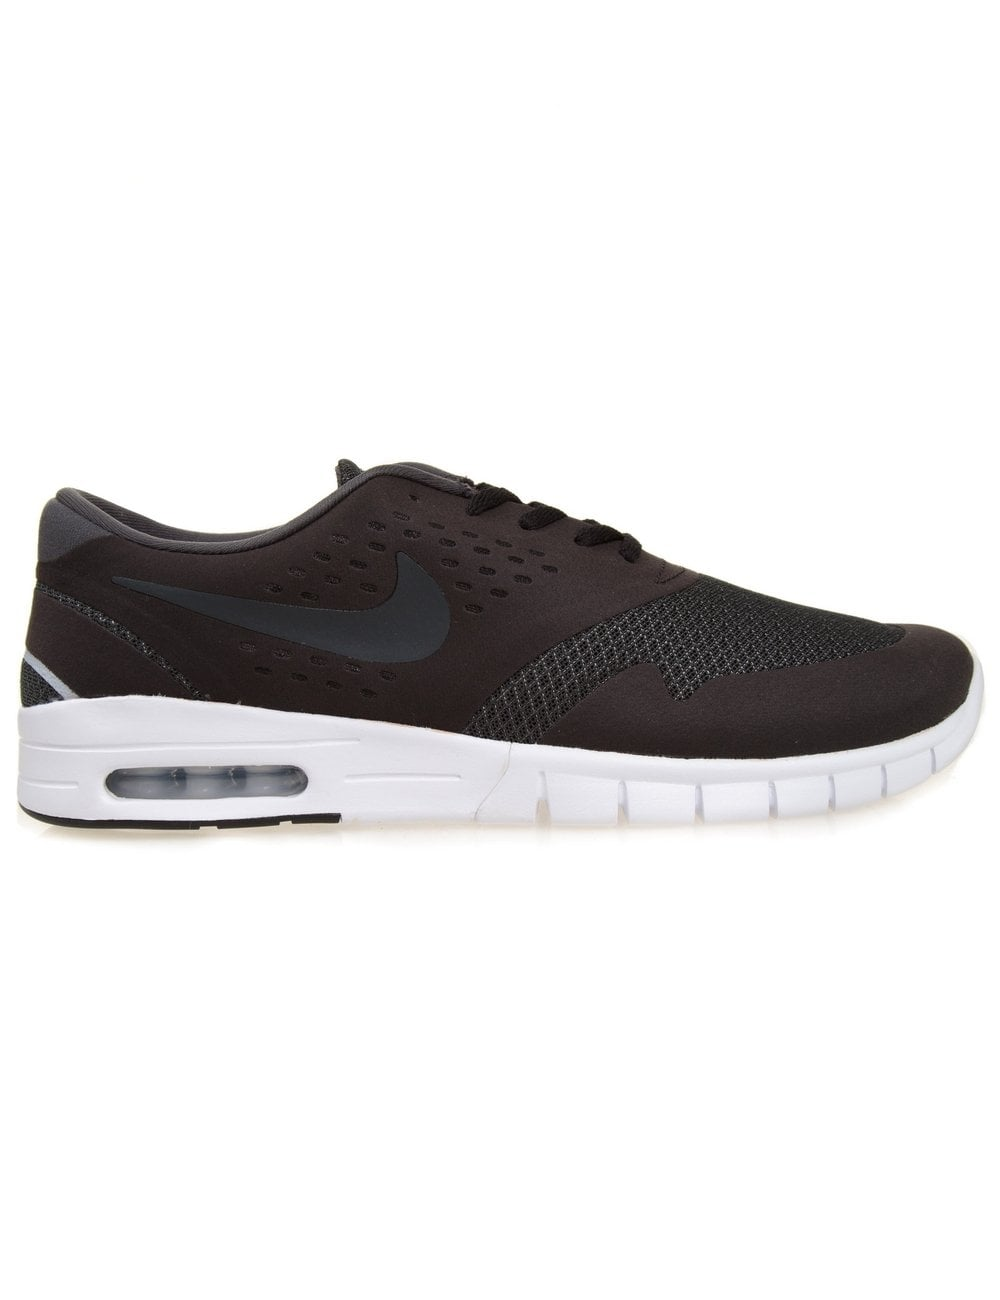 a691ed7251a Nike SB Eric Koston 2 Max - Black Anthracite - Footwear from Fat ...